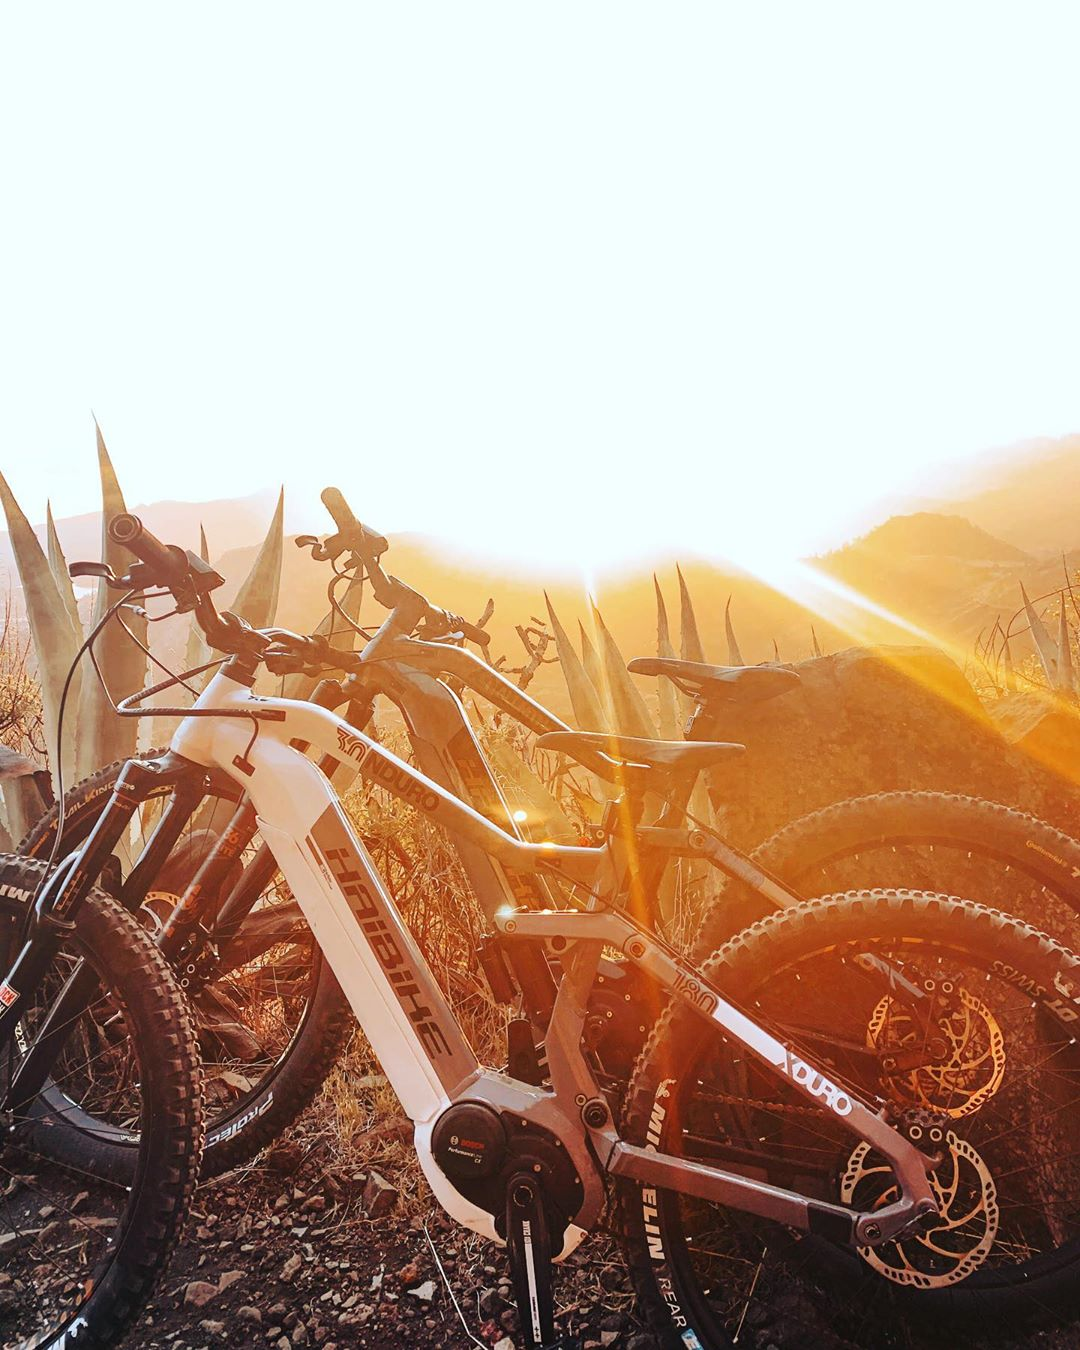 Sunsets and eebs, 2 of my favourite things nowadays // #emtb #emountainbike #haibike #enduro #mountainbiking